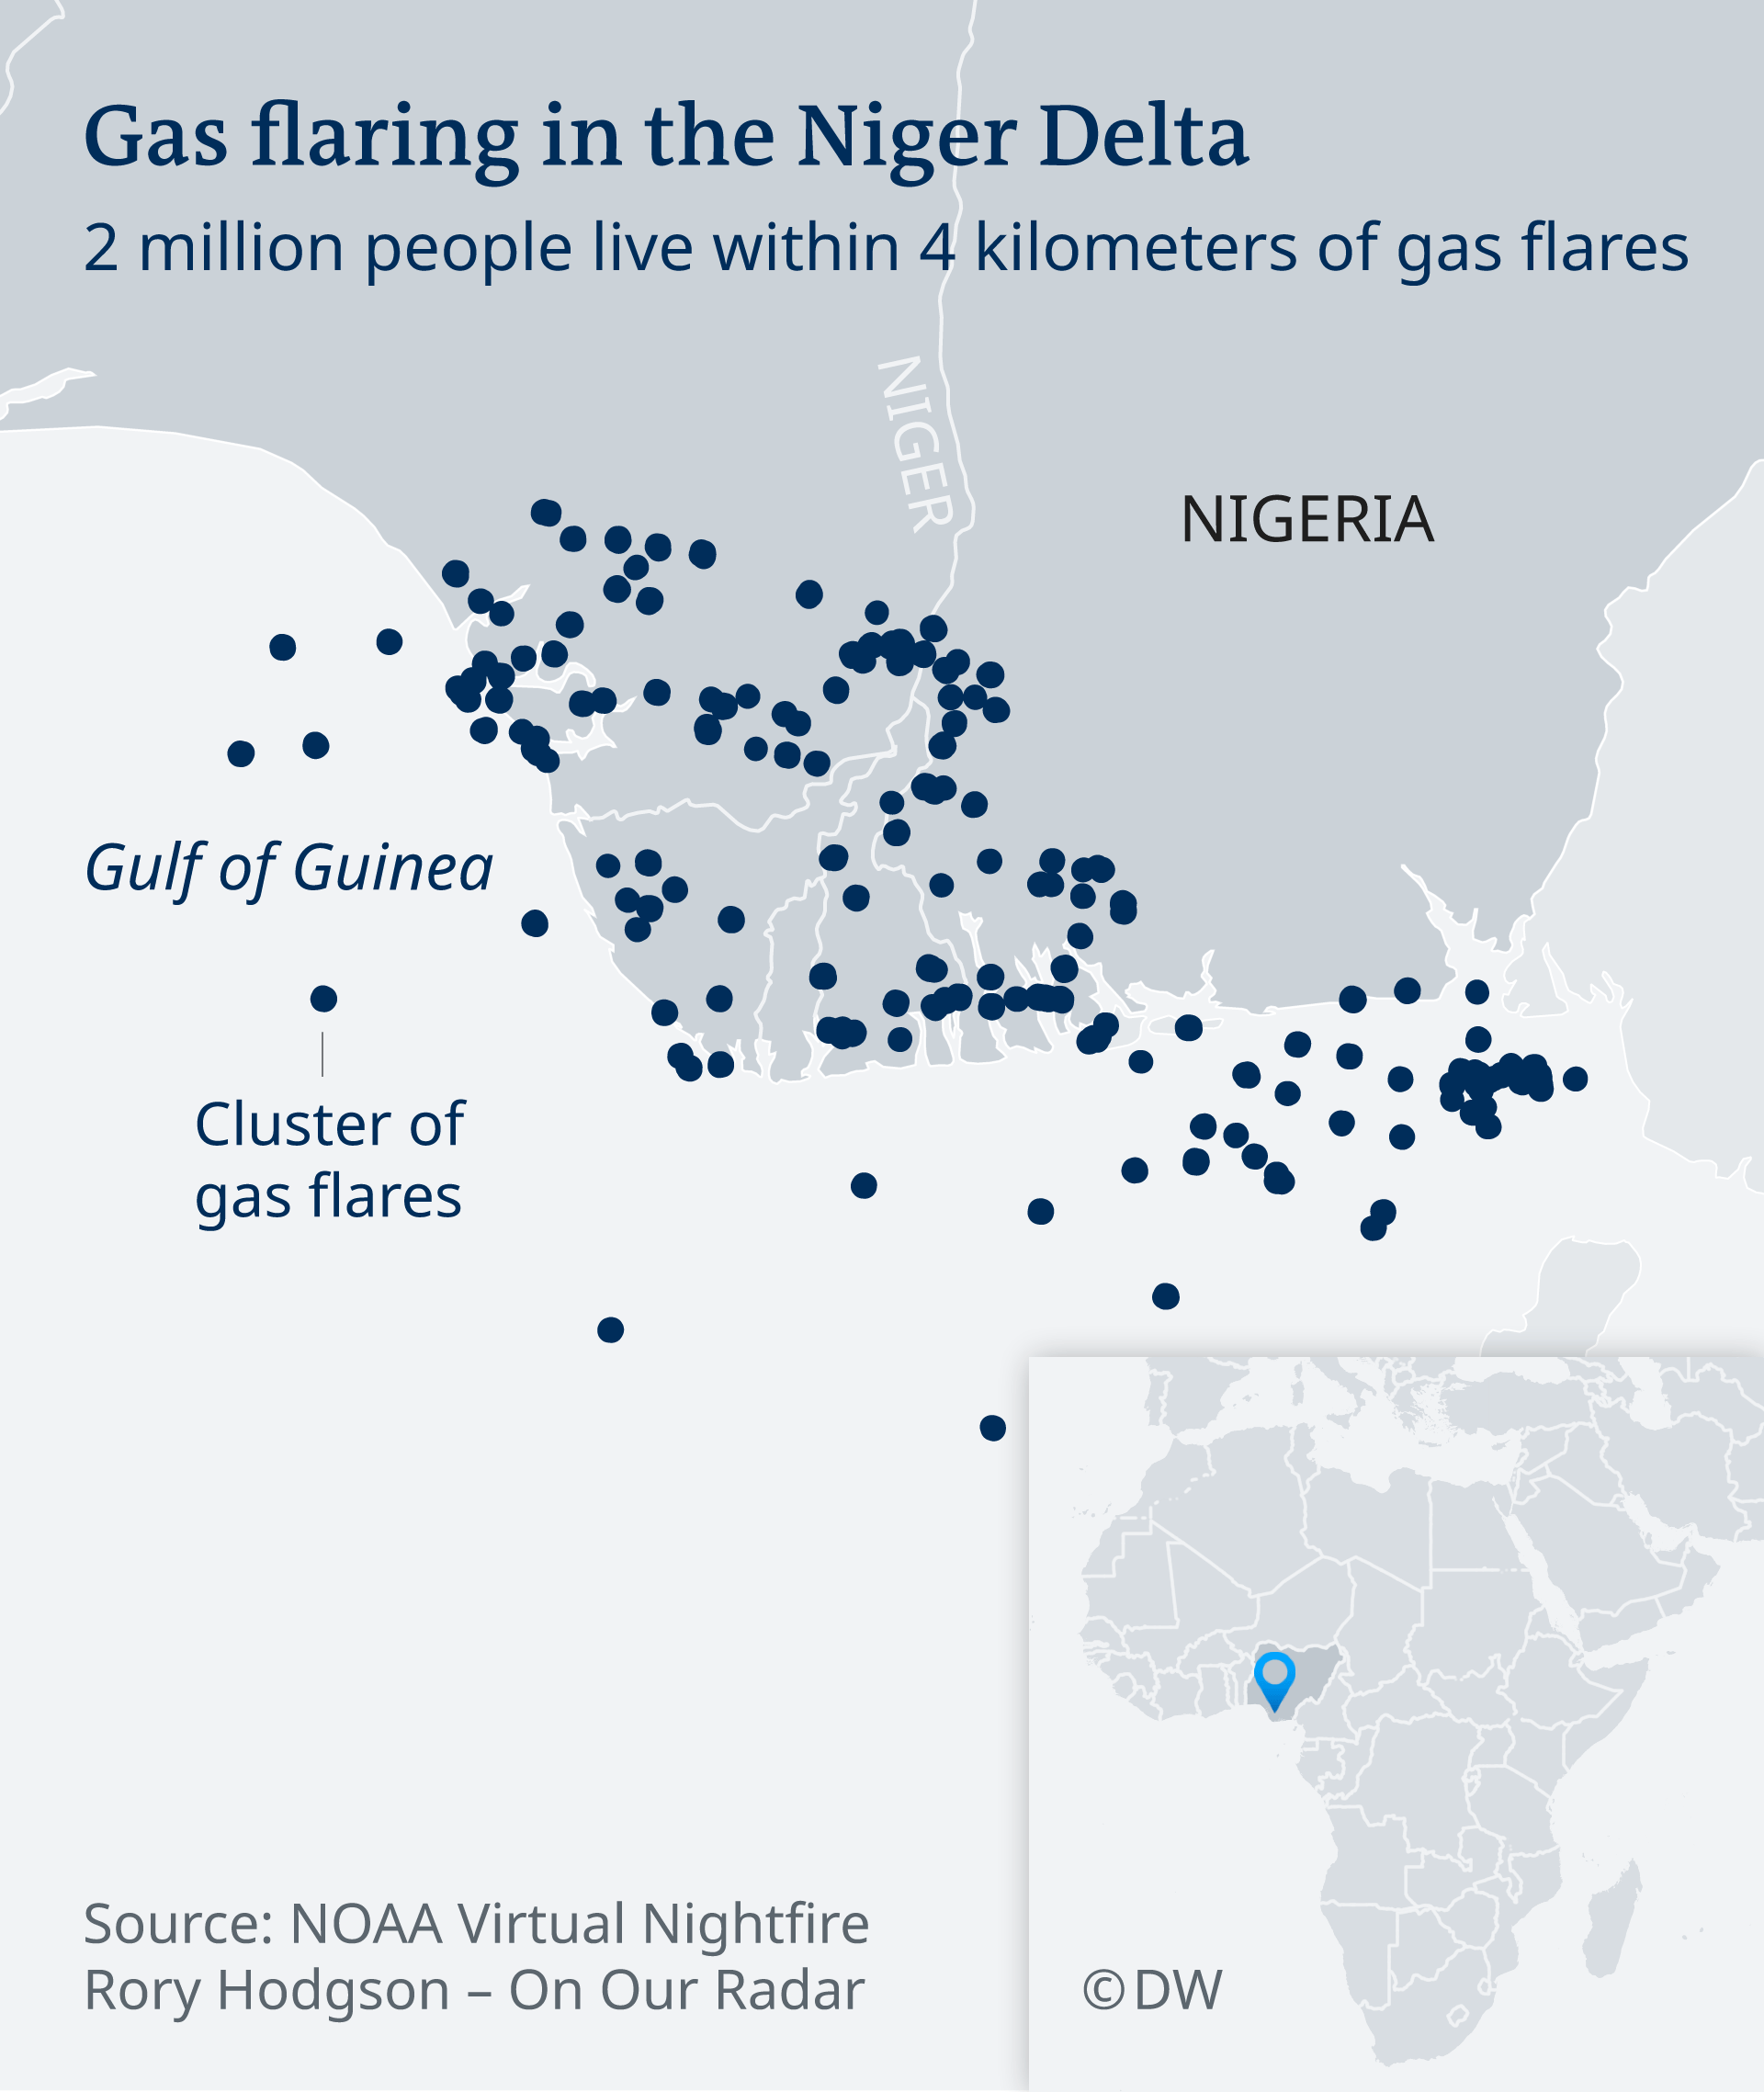 Map of gas flaring in the Niger Delta